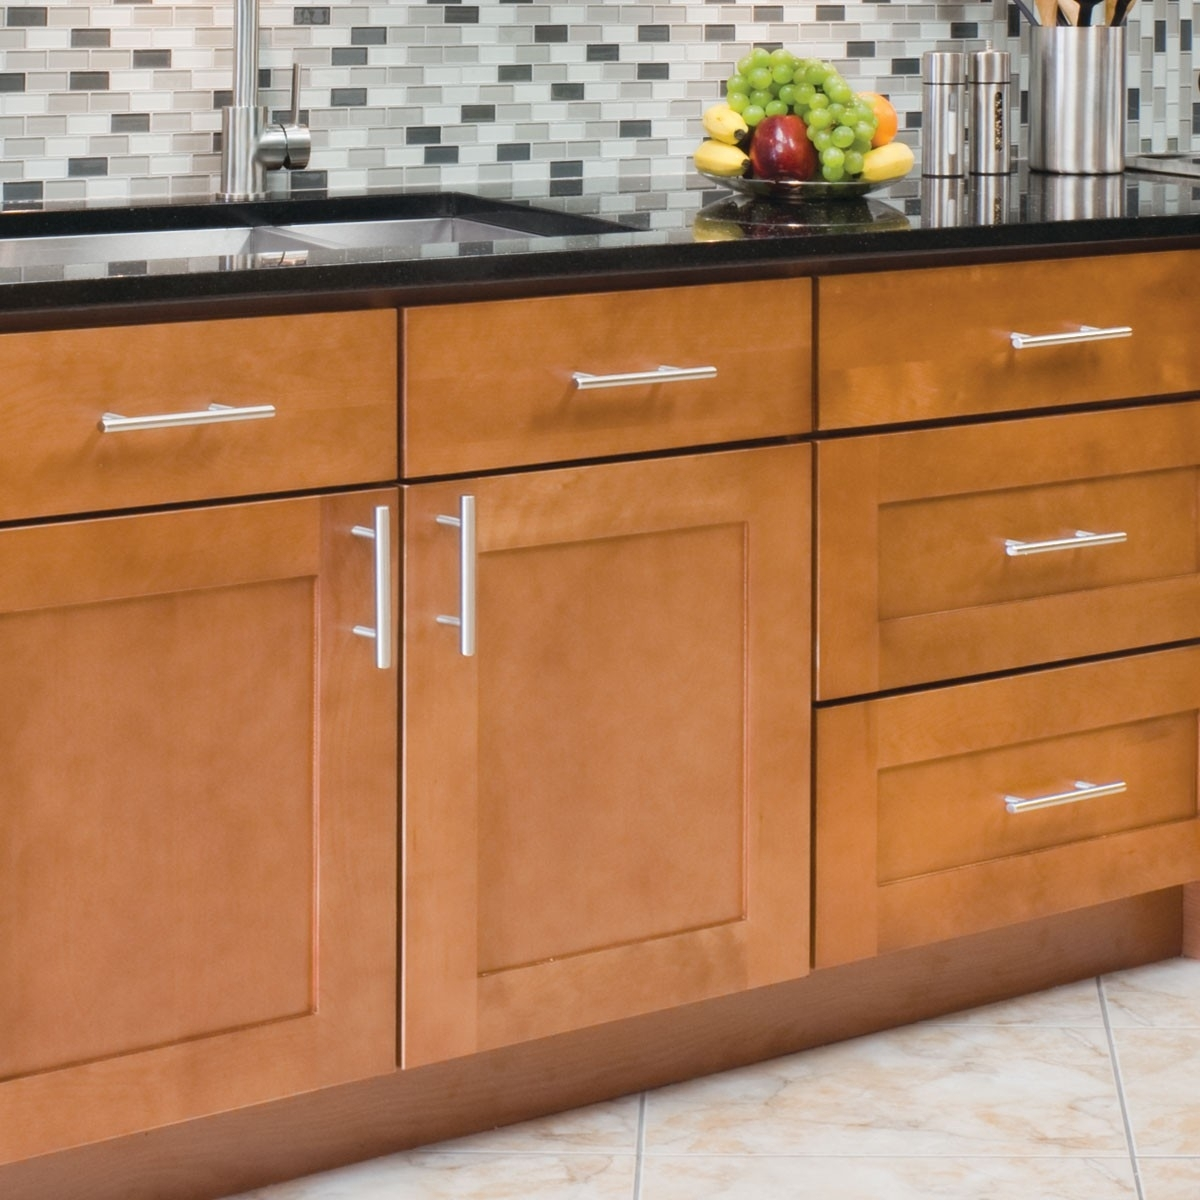 Brushed Stainless Kitchen Cabinet Handles